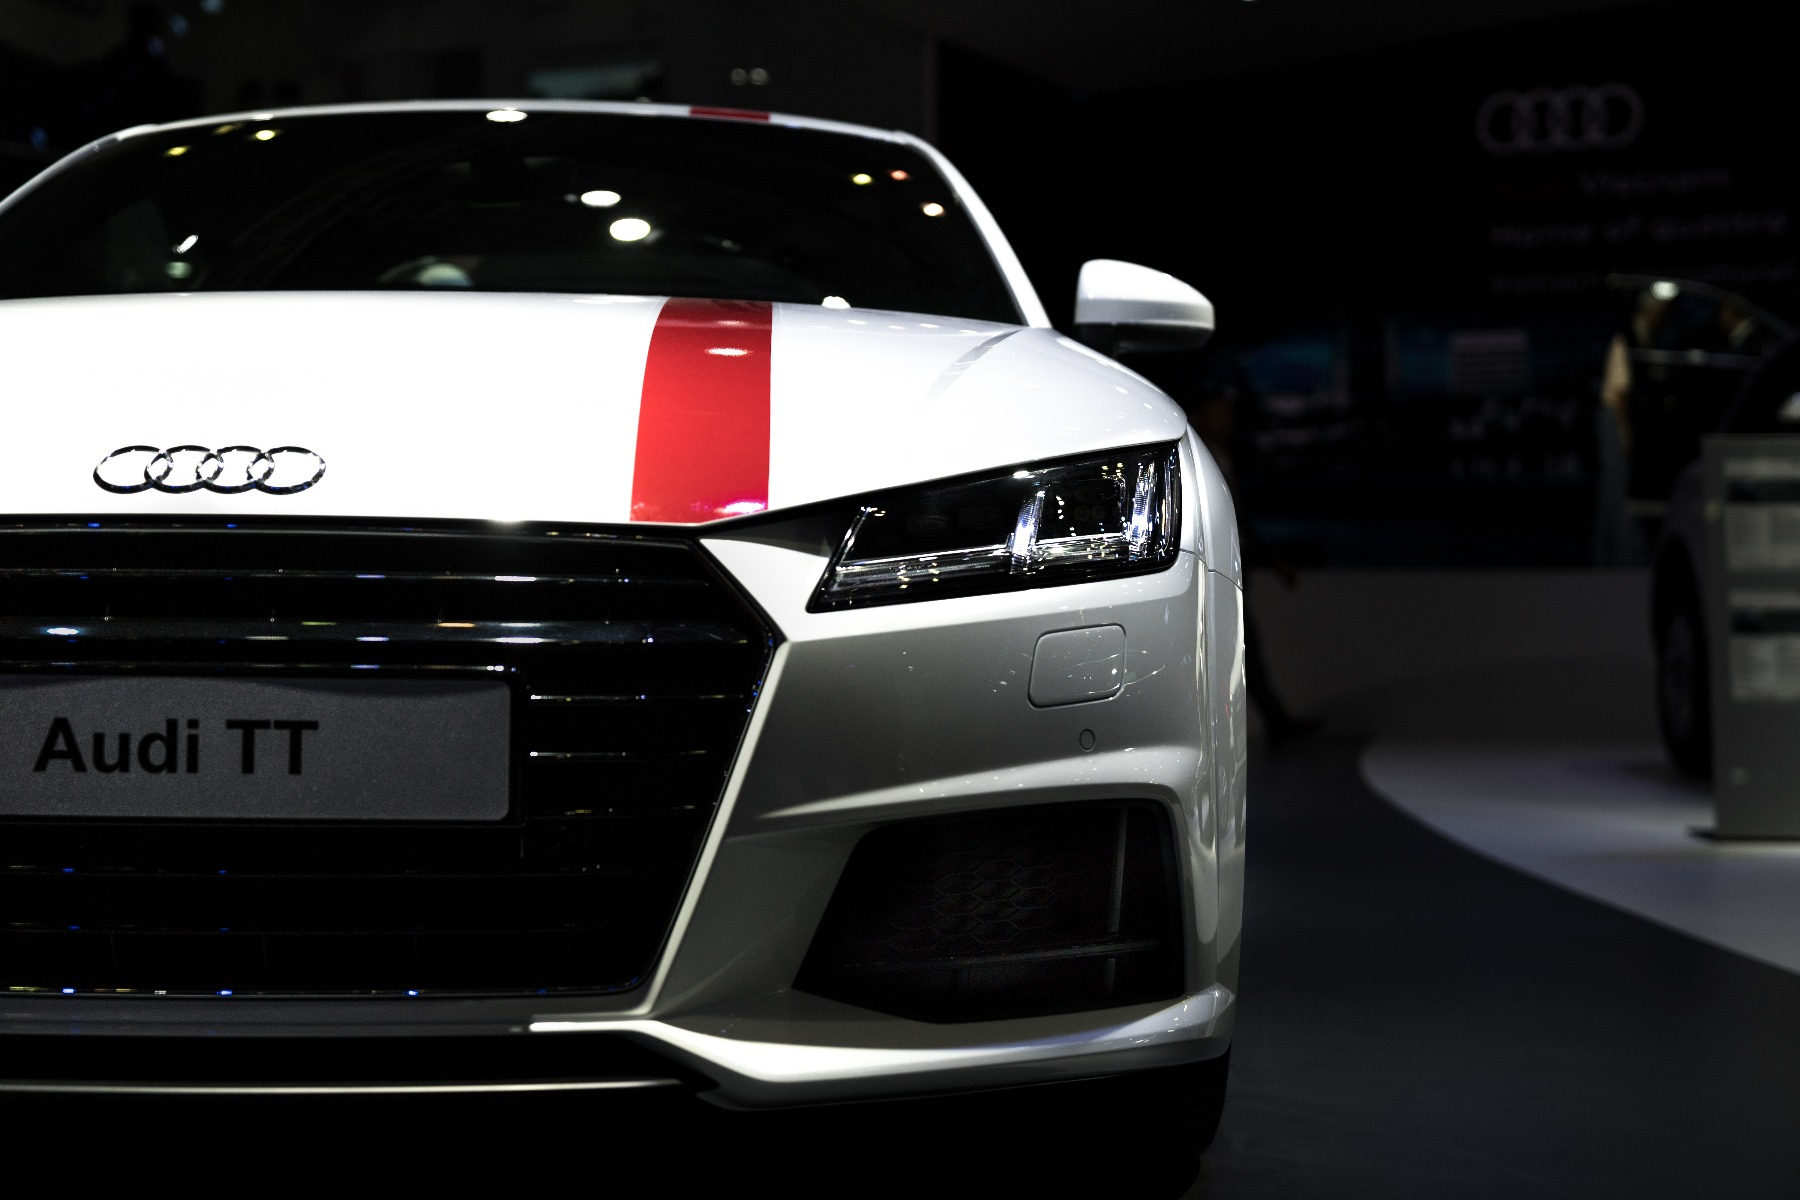 what are the new features of the latest audi tt